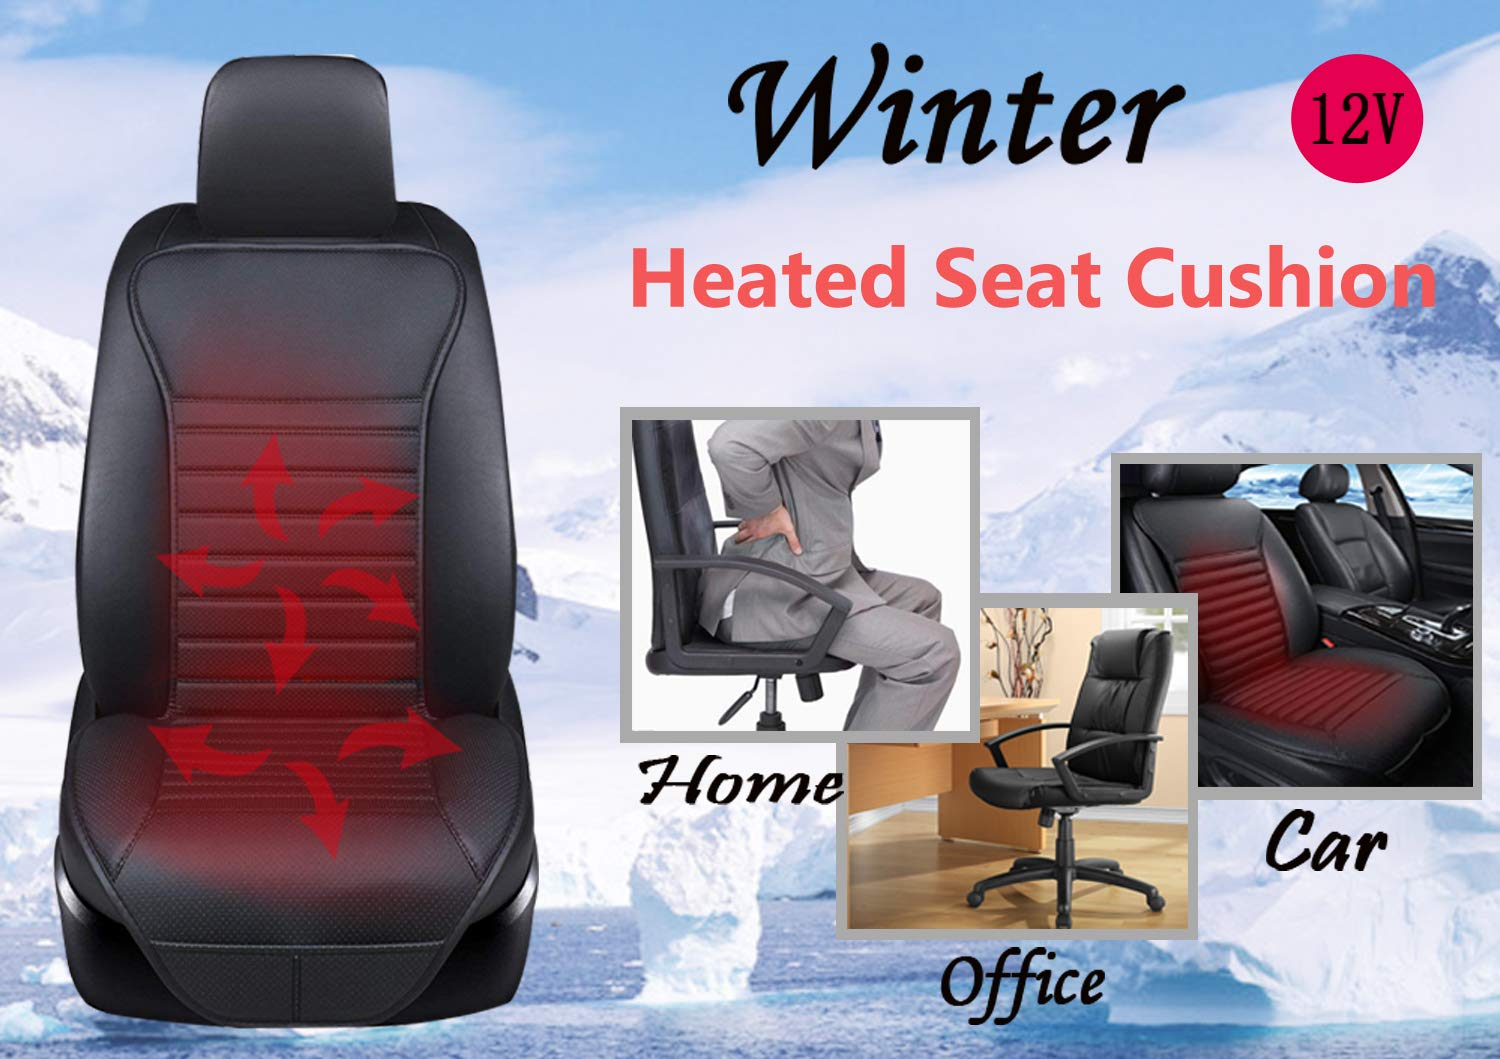 Universal Fit for Auto Supplies Home Office Chair 12V Sleek Design Nonslip Car Heat Seat Cushions Cover Pad Winter Warmer Black Big Ant Heated Seat Cushion